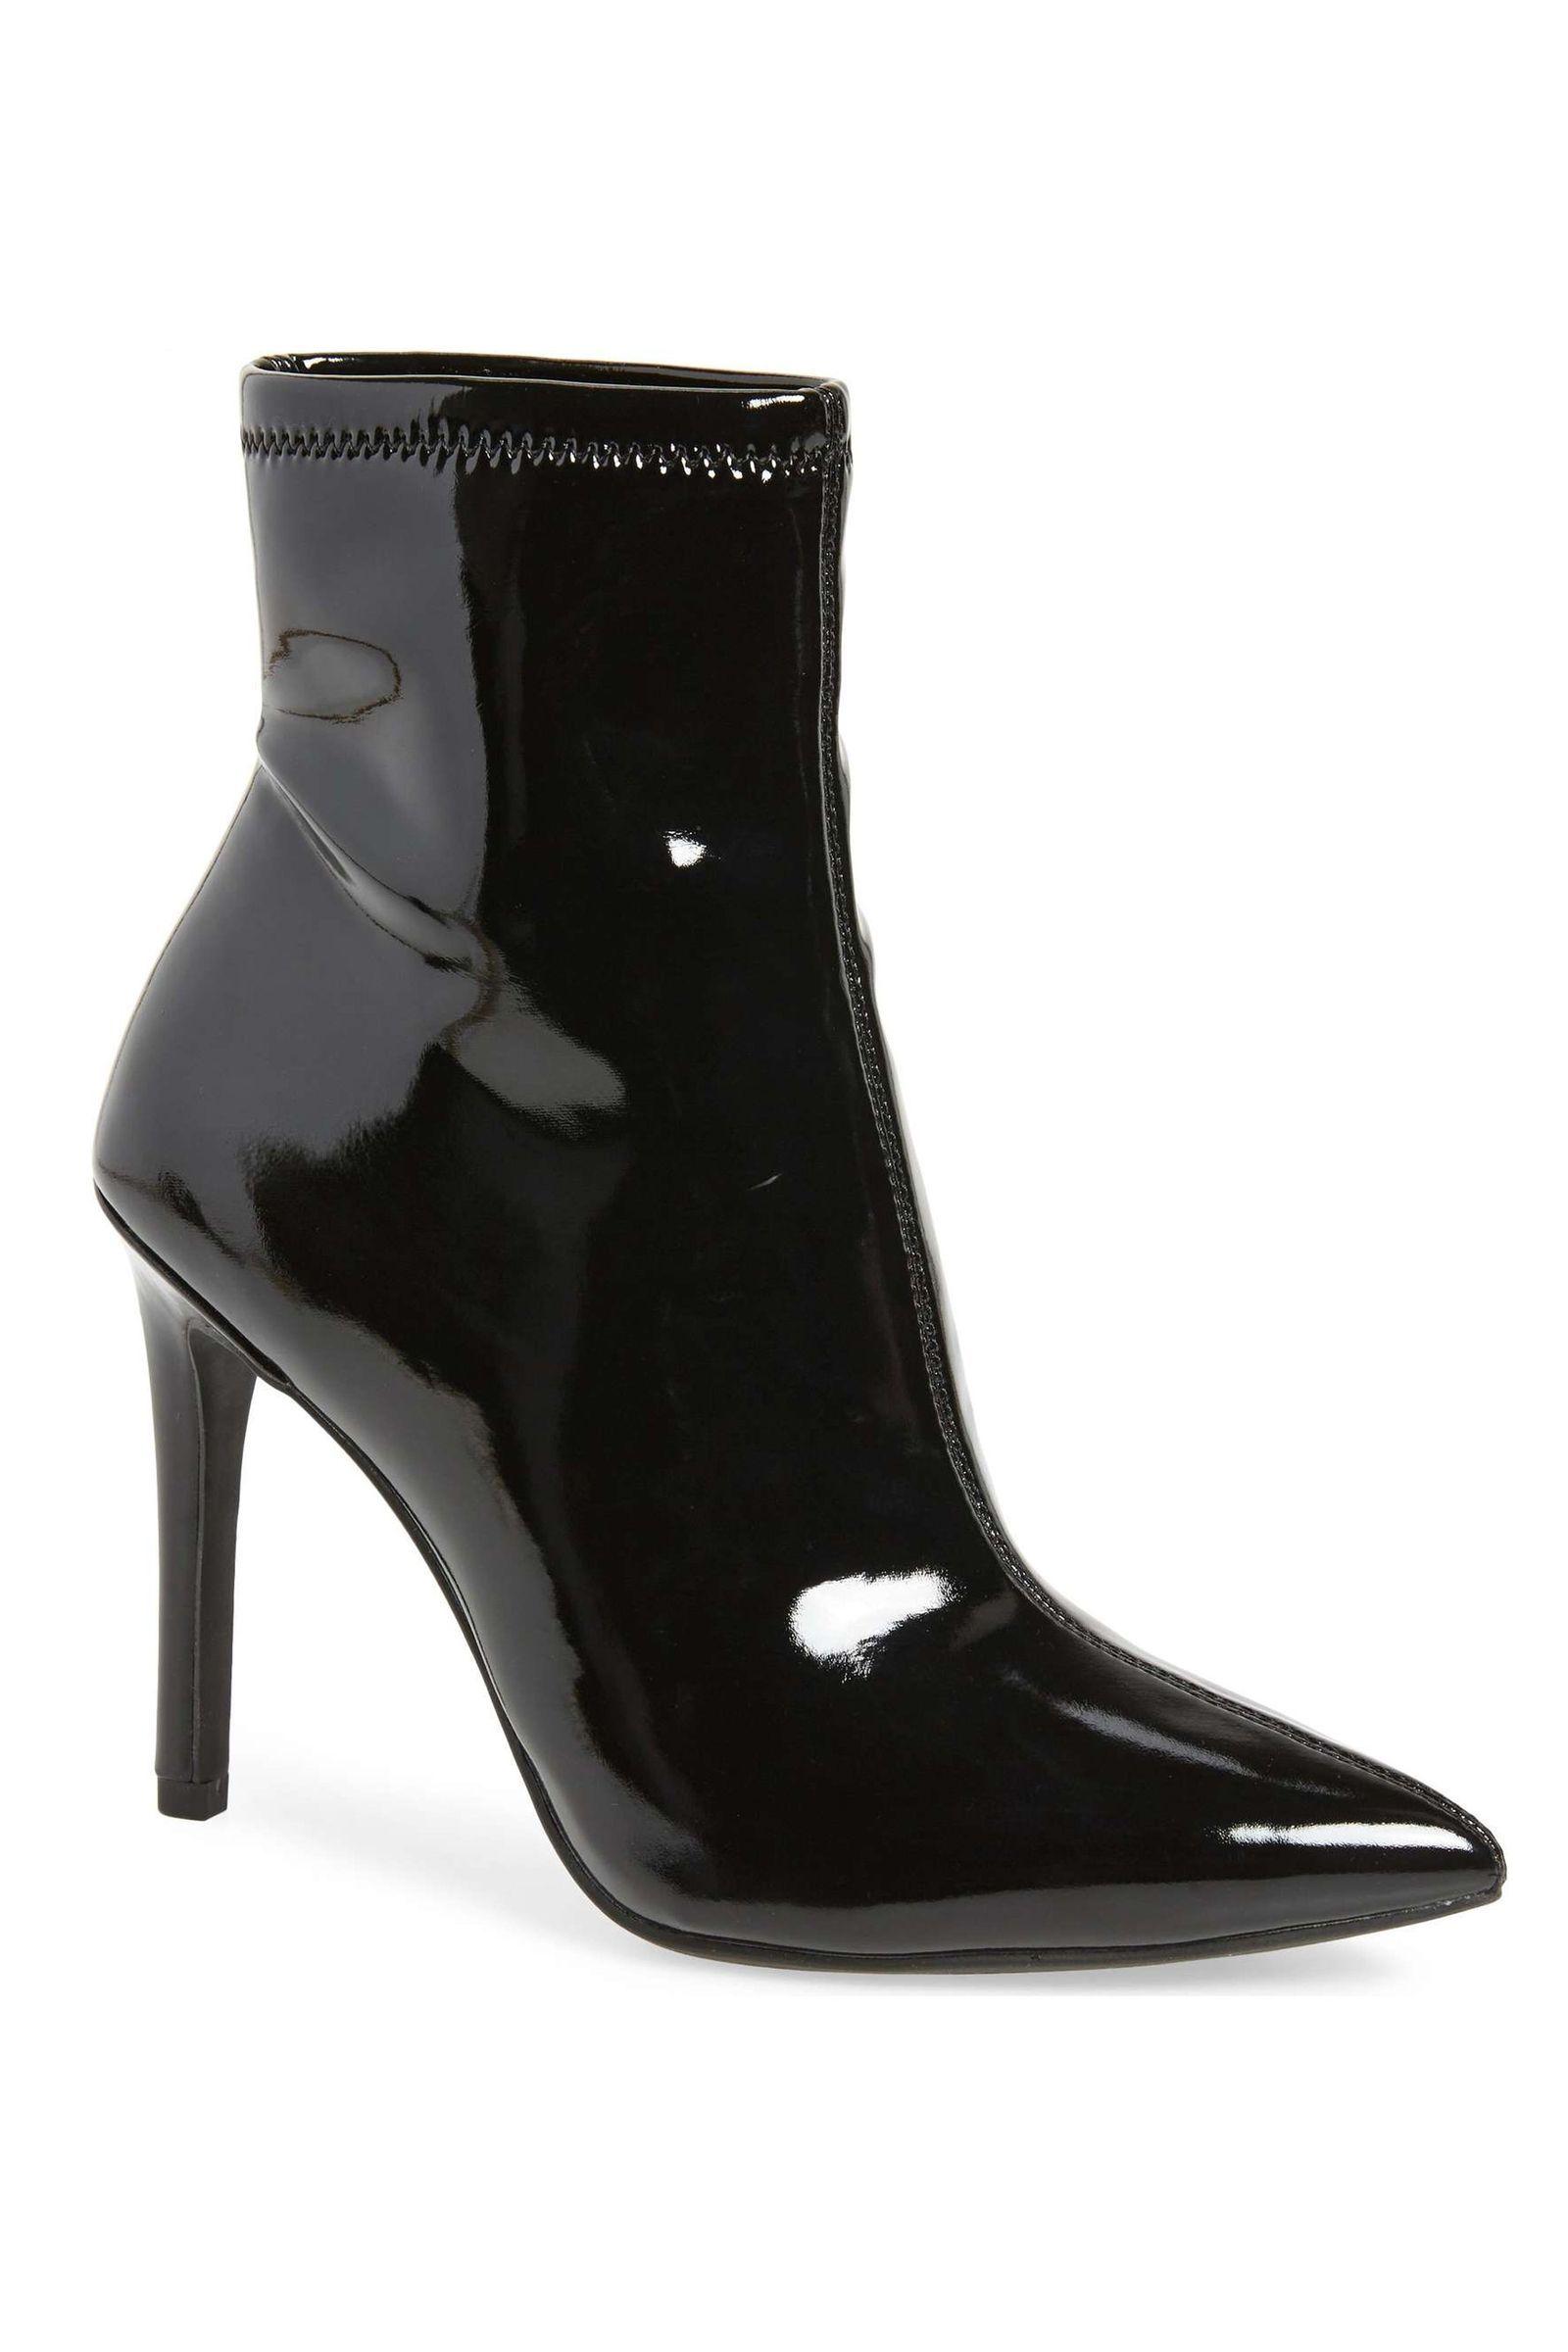 bb57d4e117 Discover ideas about Black Lace Up Boots. SheIn(sheinside) Lace Up Patent  Leather Ankle ...